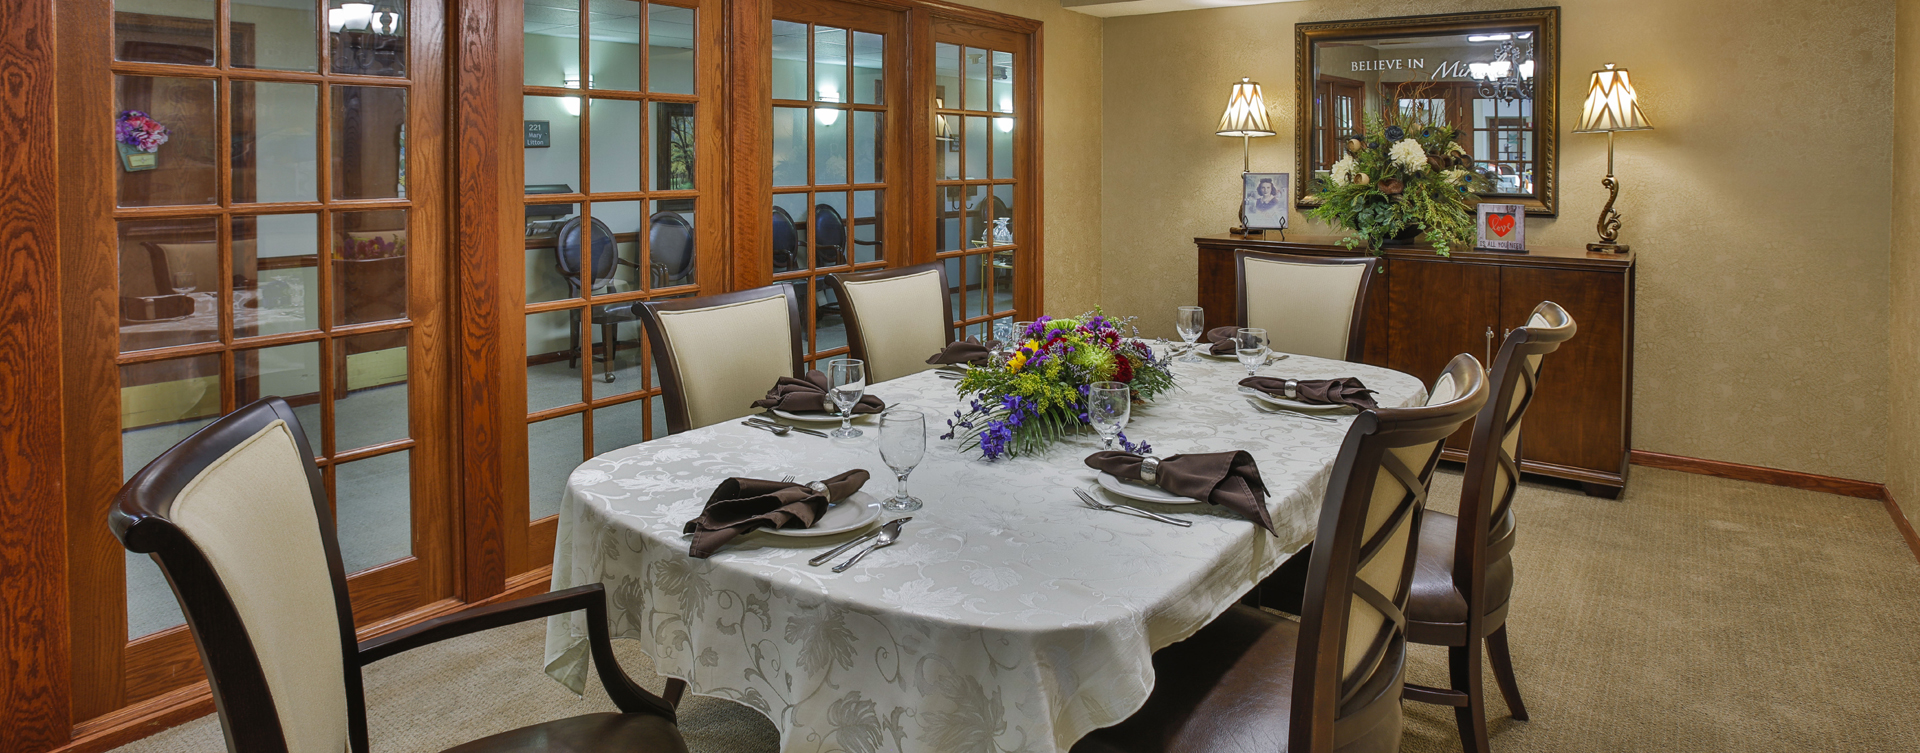 Food is best when shared with family and friends in the private dining room at Bickford of Peoria